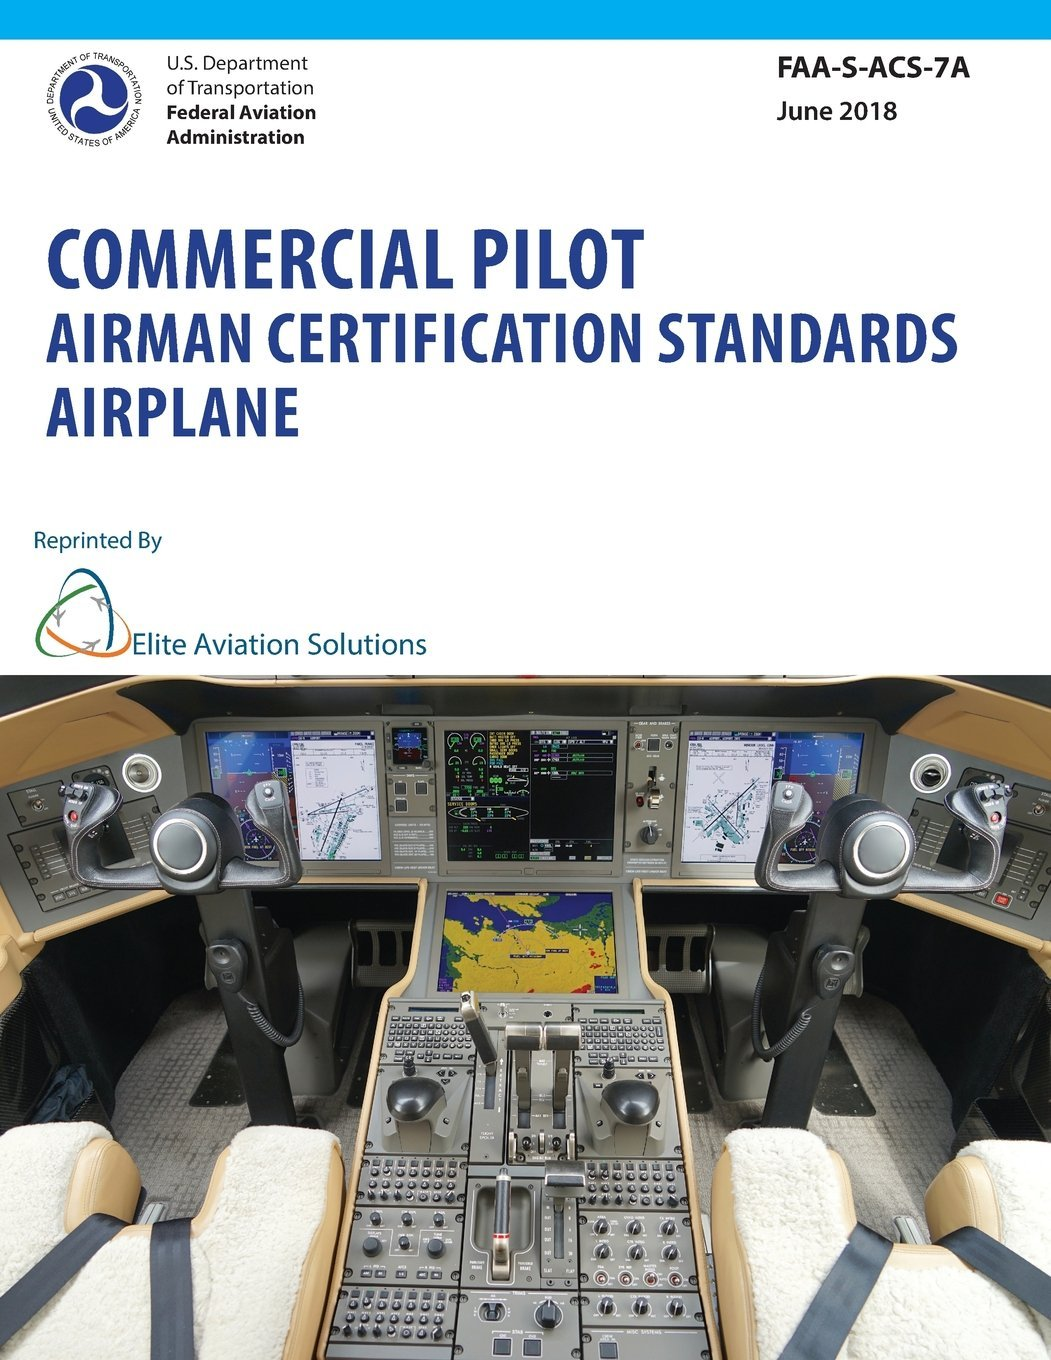 Commercial Pilot Airman Certification Standards Airplane Faa S Acs